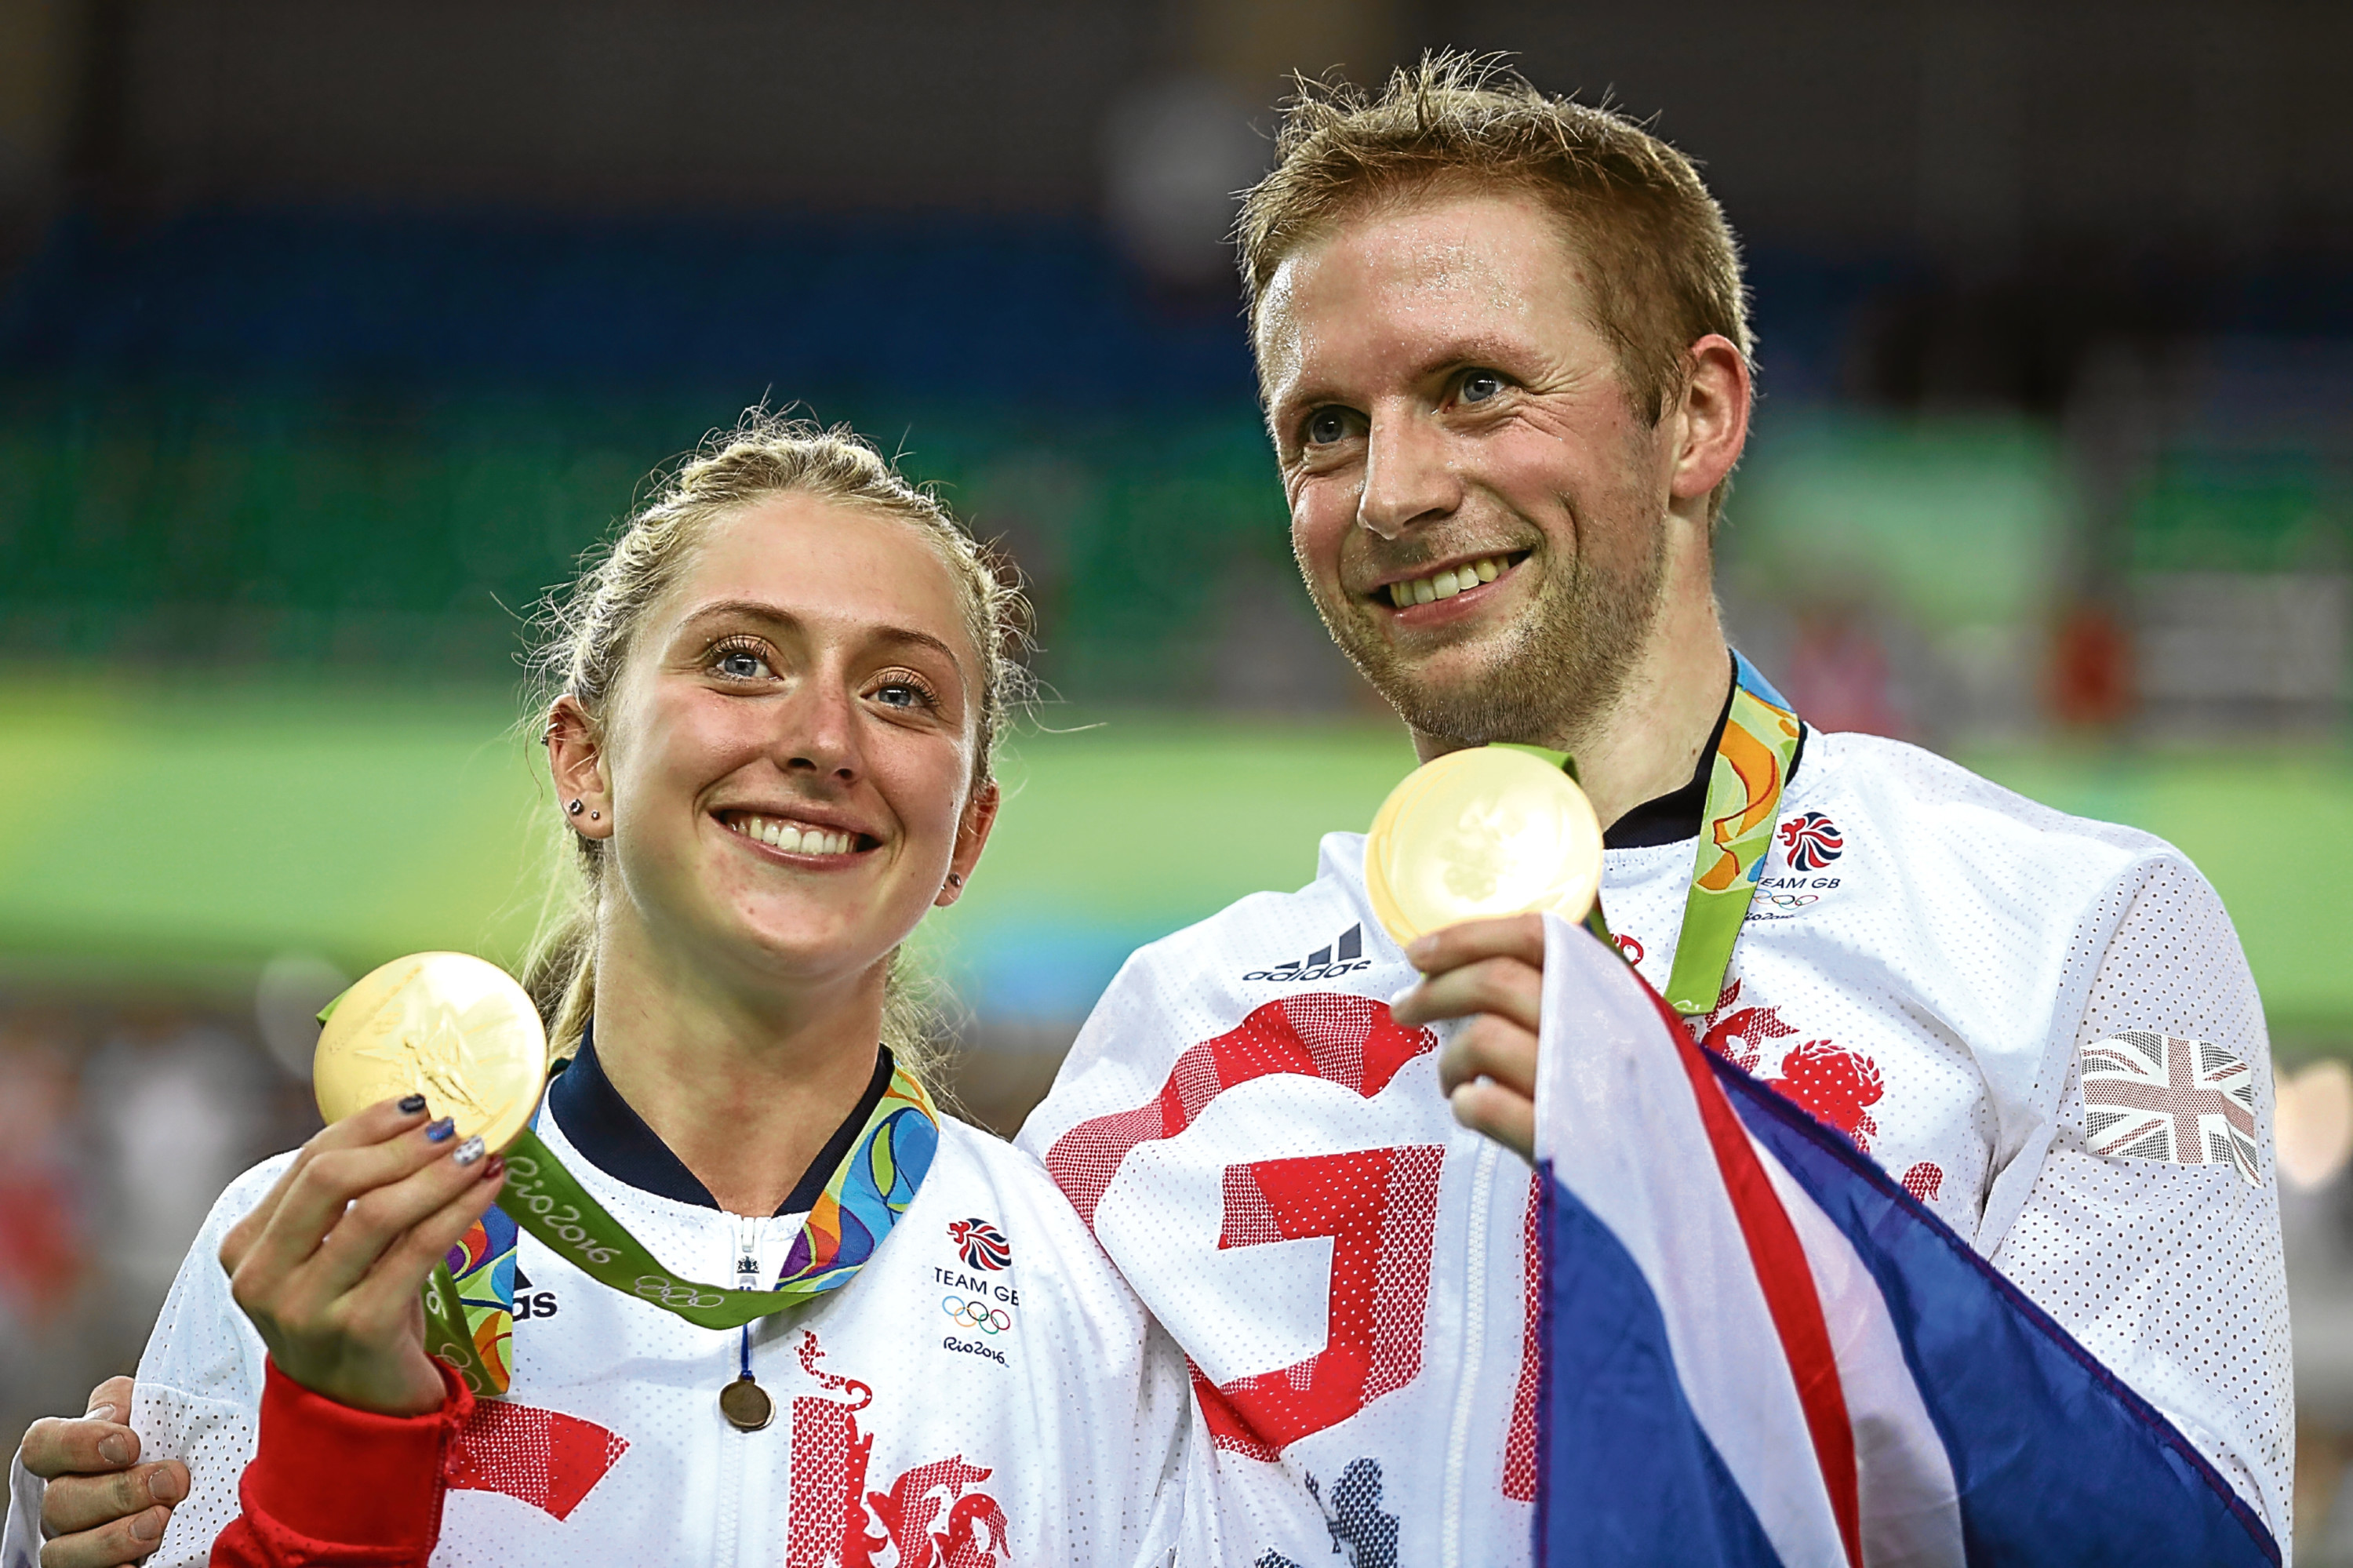 Jason Kenny celebrates with Laura Trott  (Bryn Lennon/Getty Images)